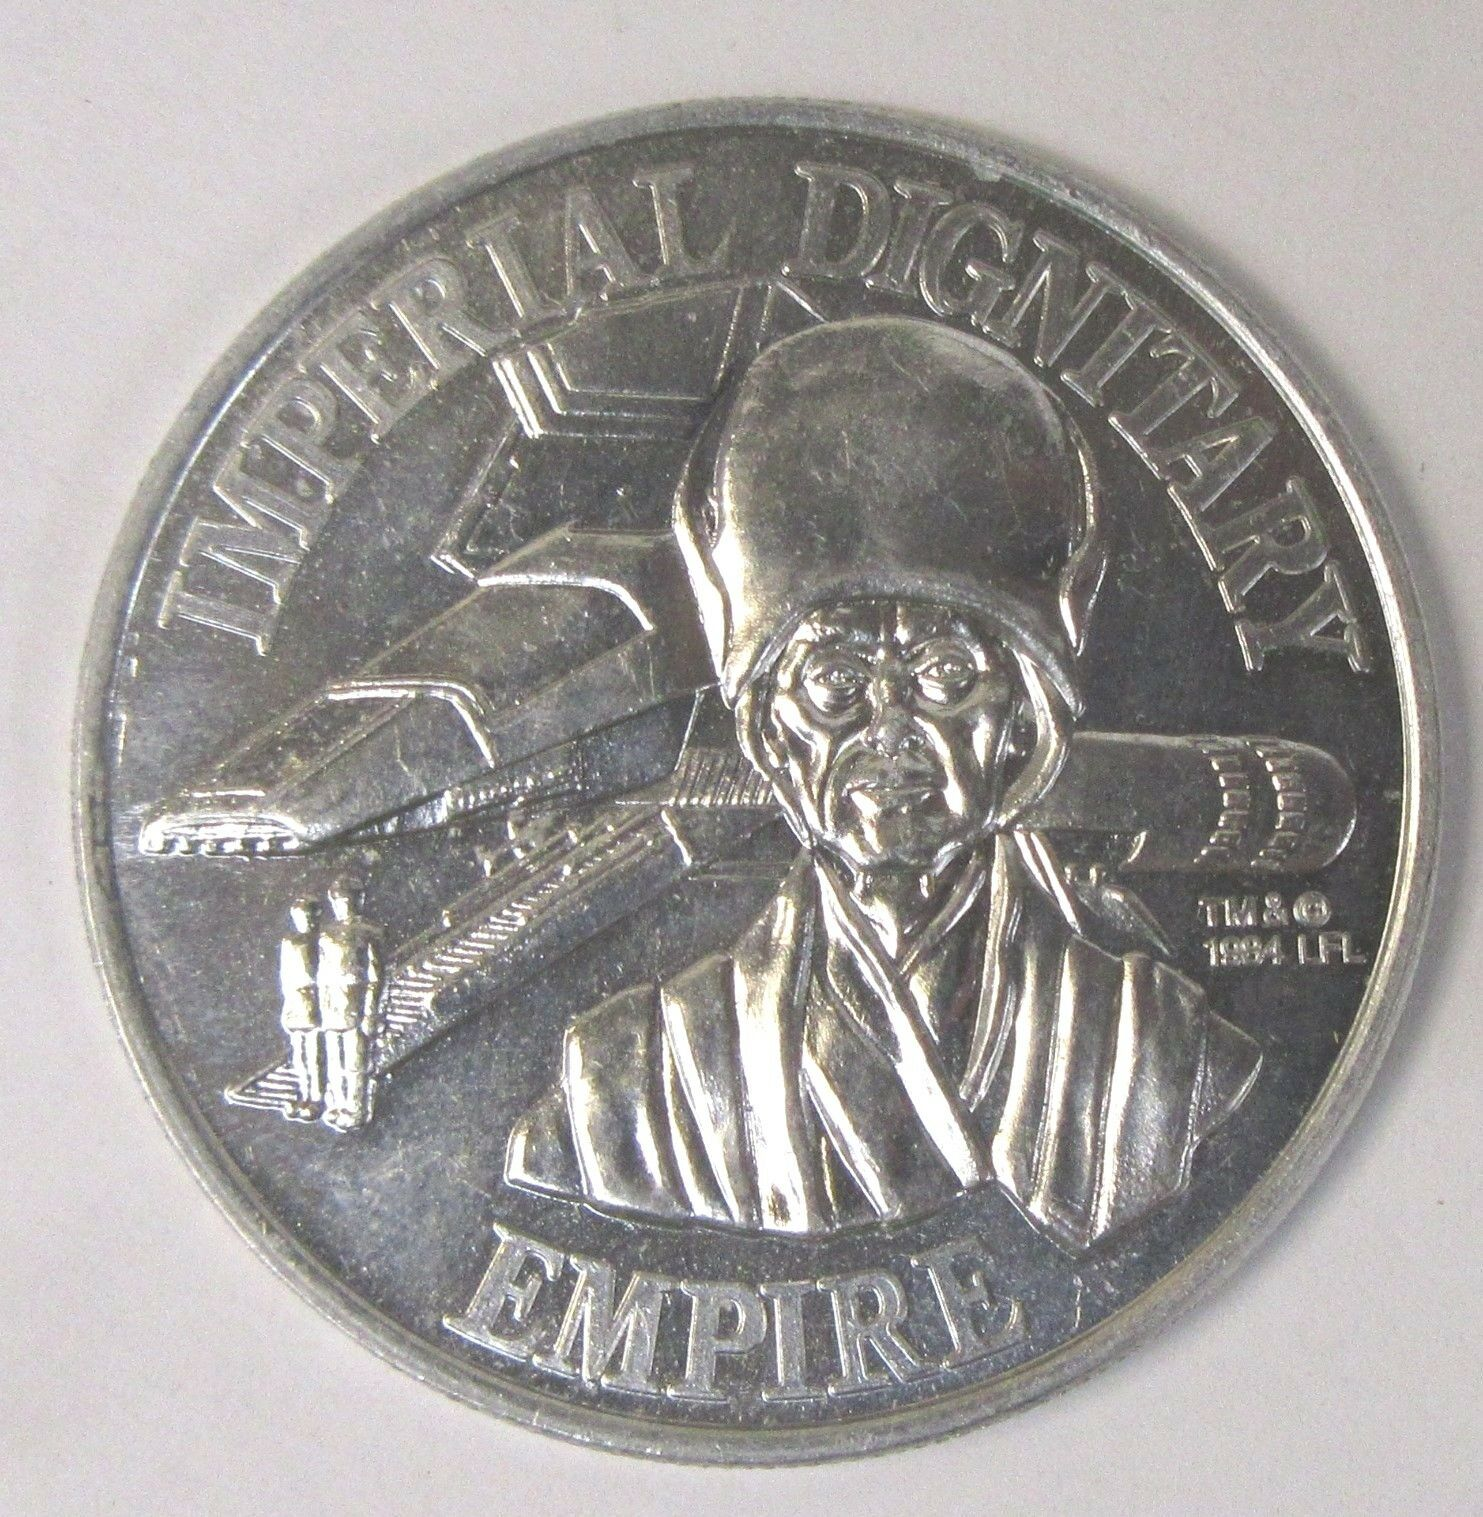 Kenner STAR WARS coin IMPERIAL DIGNITARY 1984 POTF